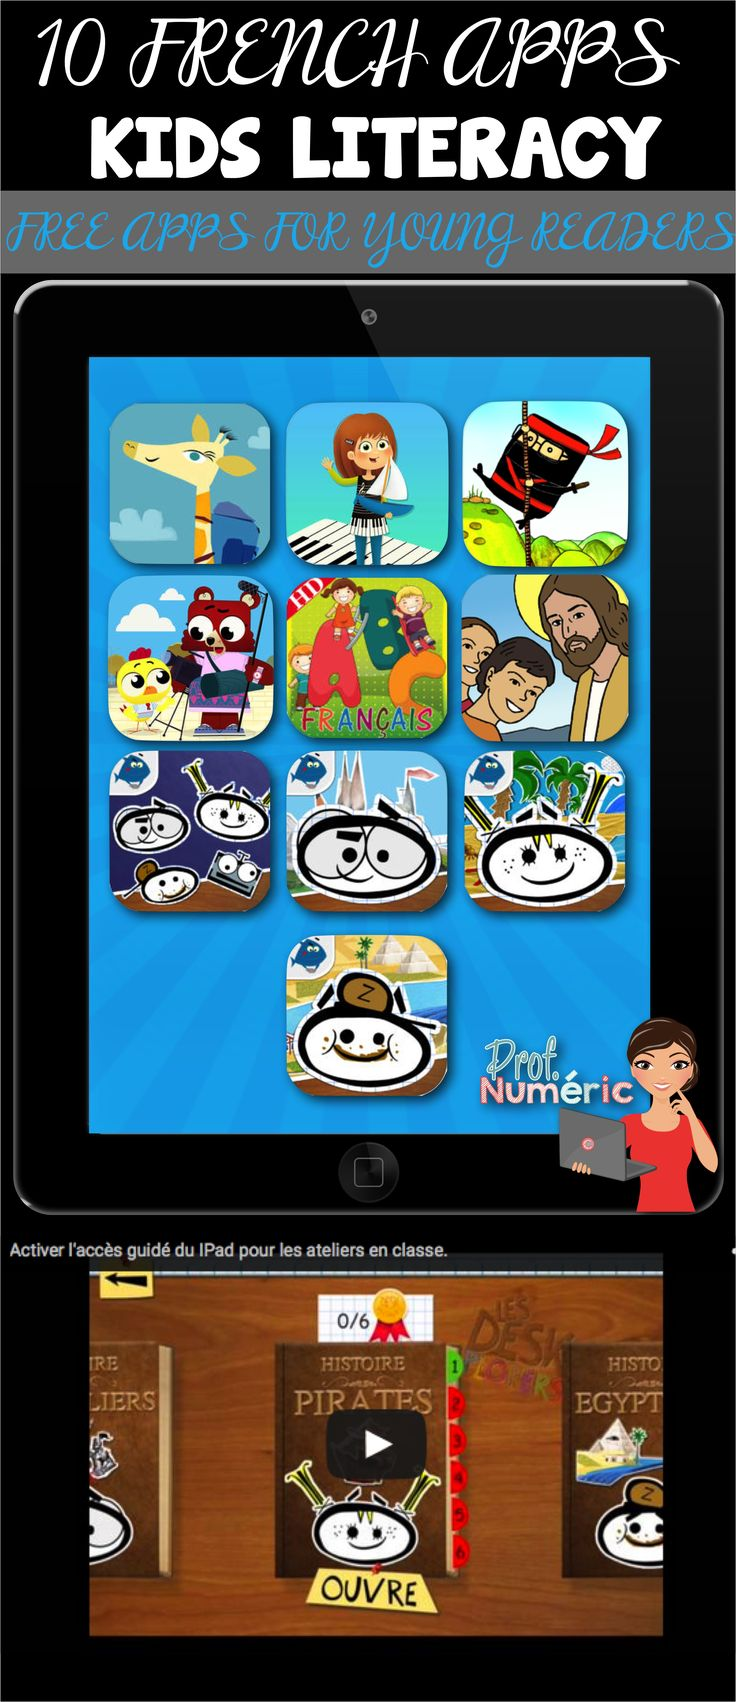 10 FRENCH APPS-Kids Literacy//Freee Apps for young readers. 10 Applications gratuites pour les jeunes lecteurs débutantes.